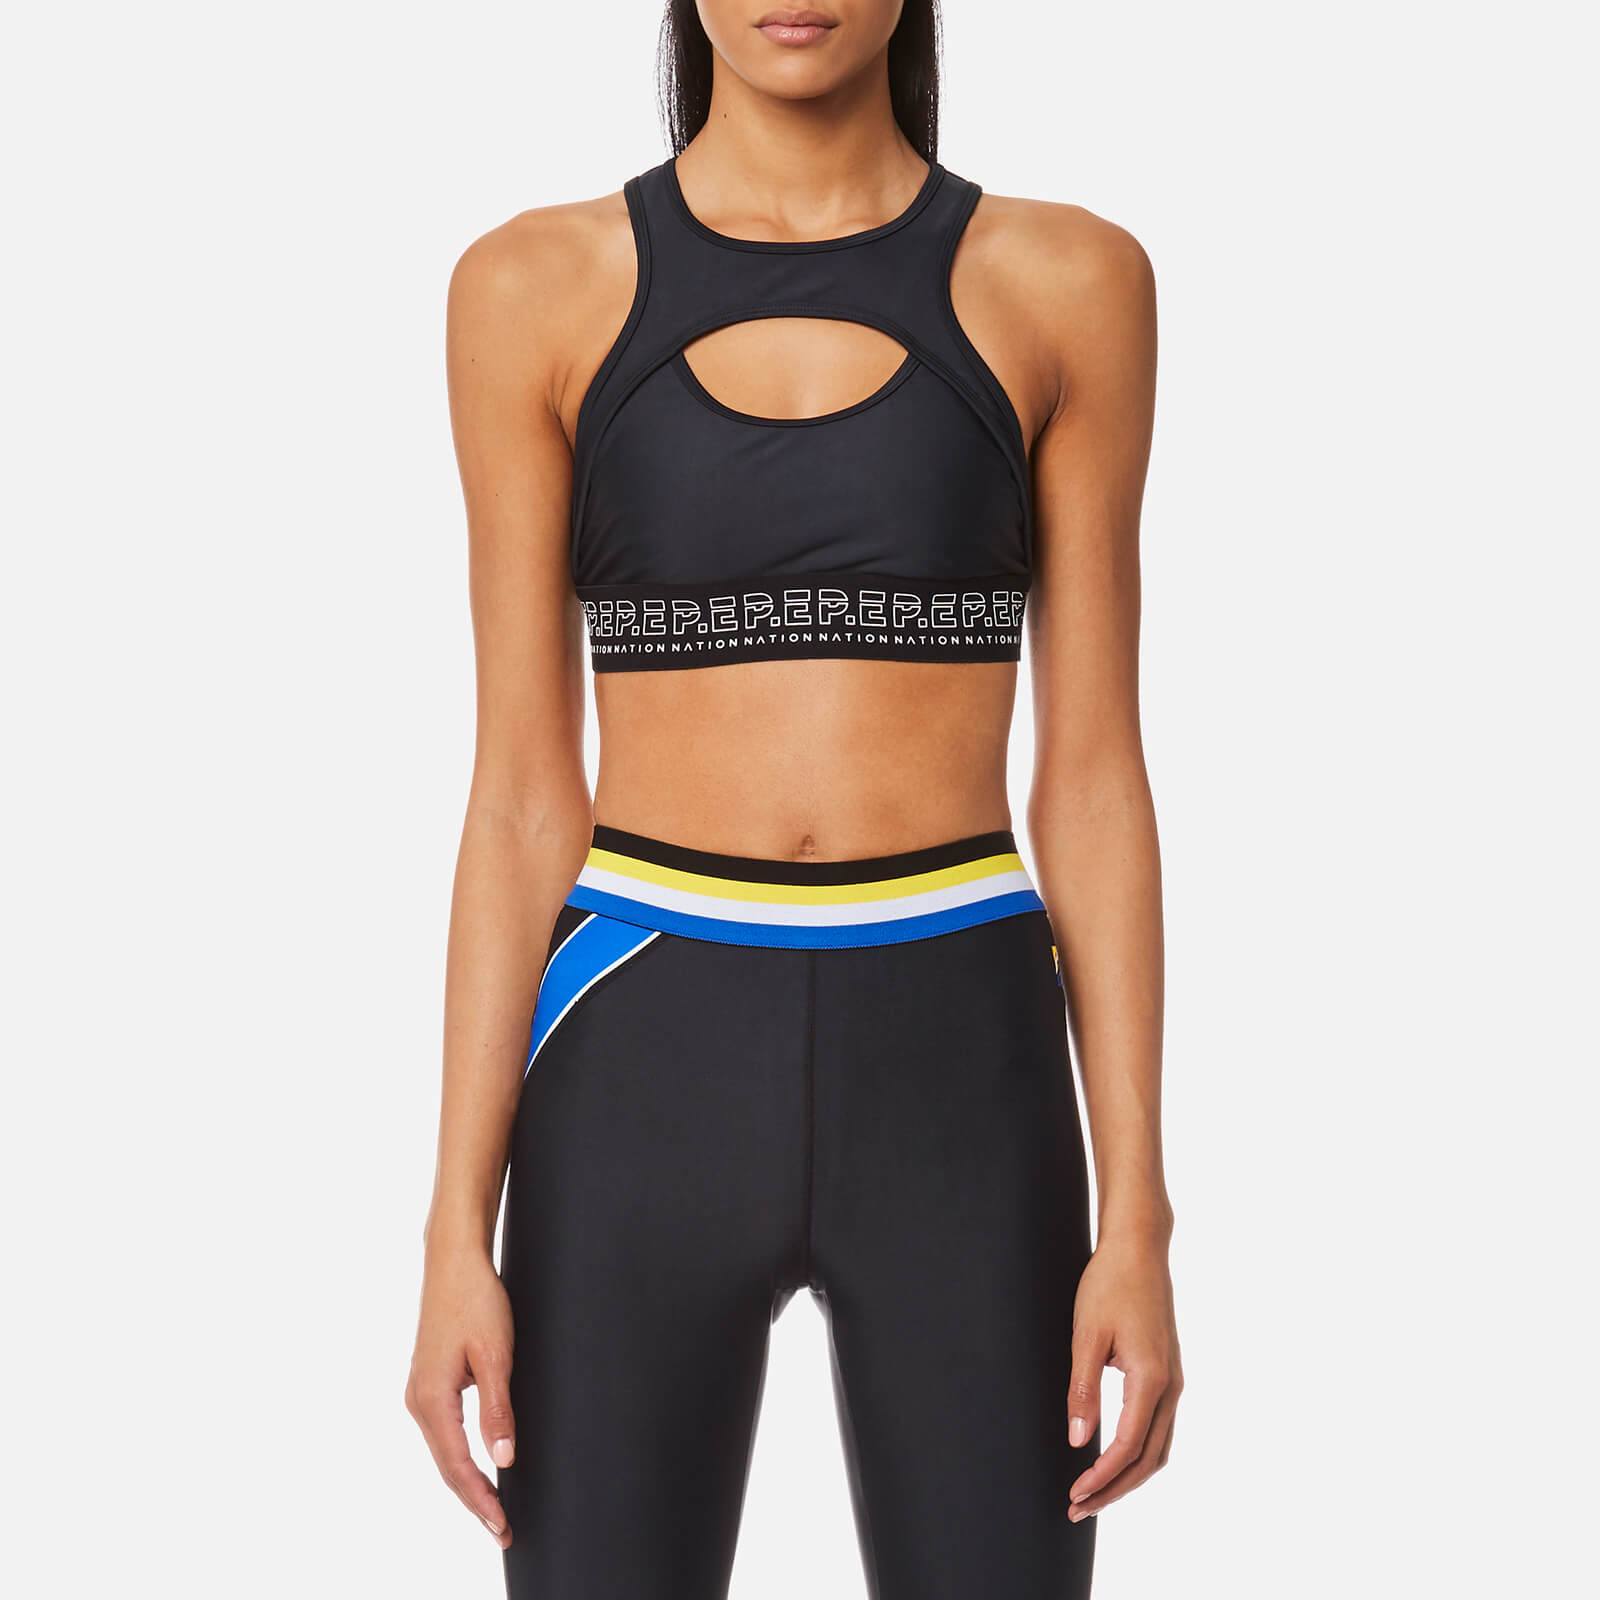 a0ba0f14239577 P.E Nation Women s Fall Line Crop Top - Black - Free UK Delivery over £50